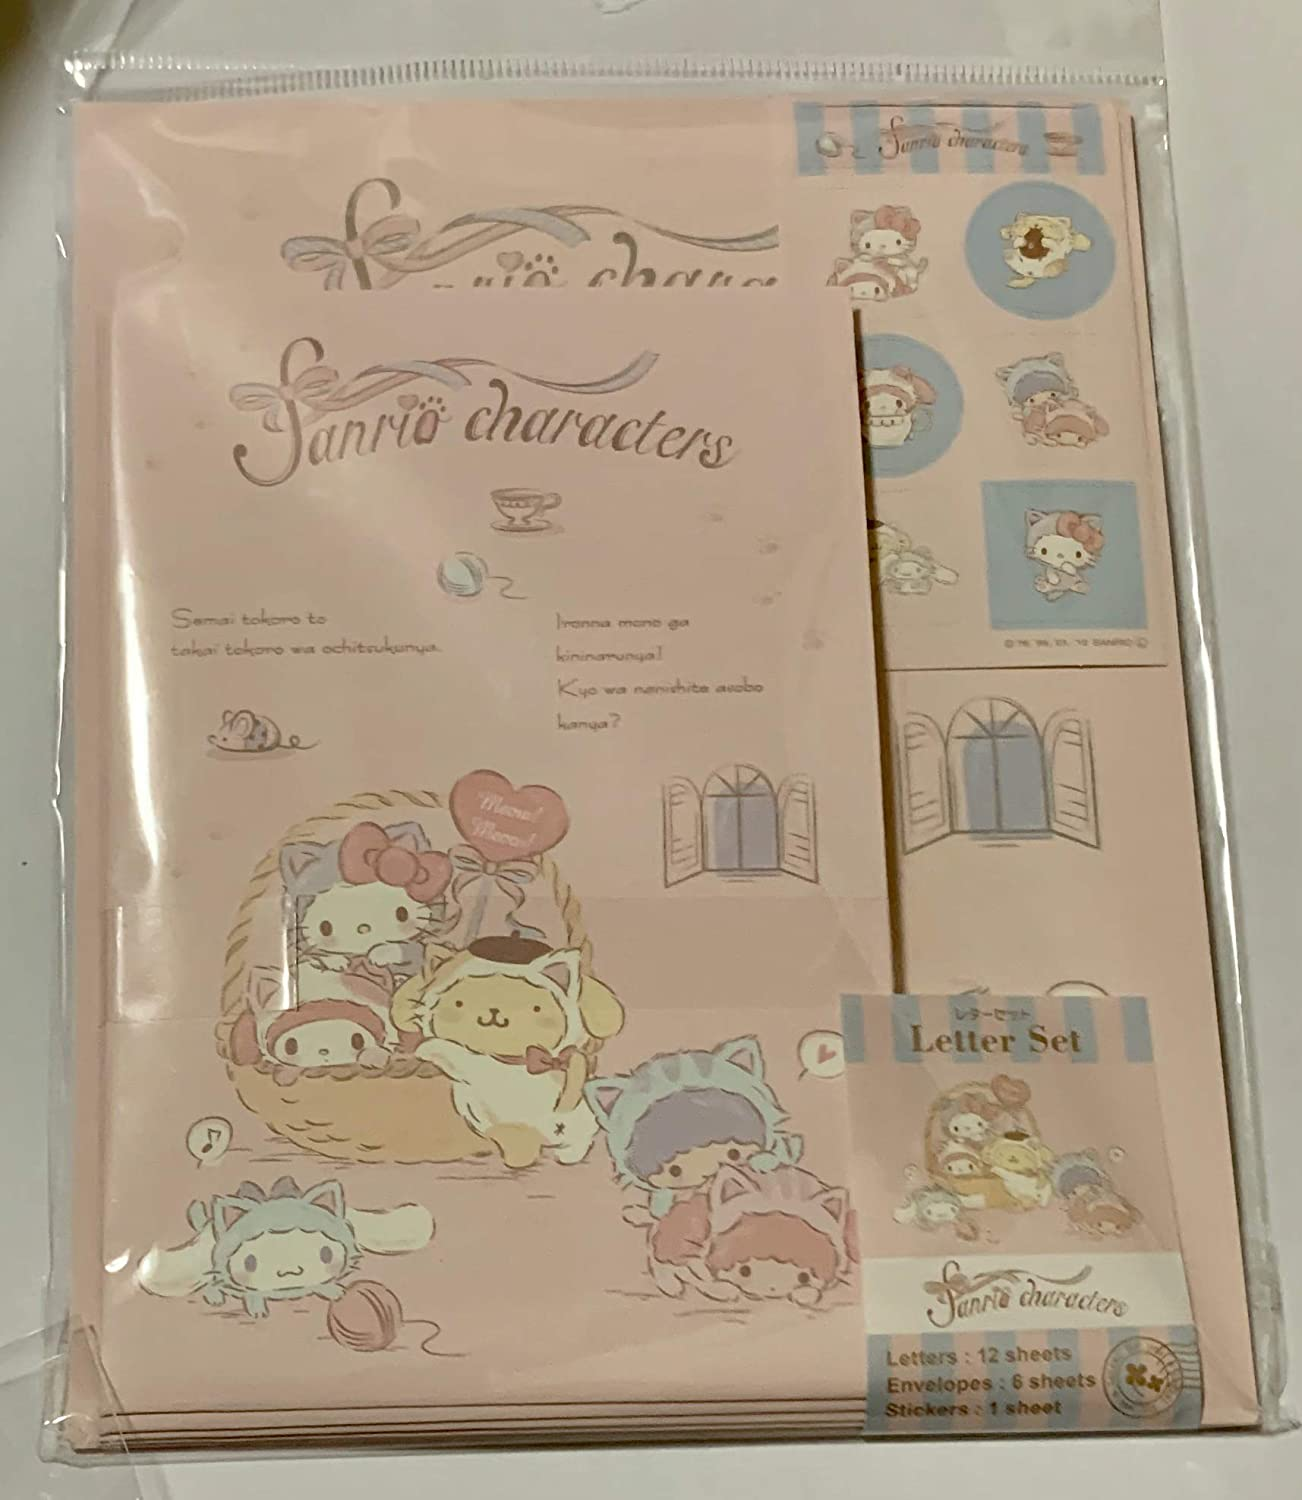 Sanrio Little Twin Stars Stationery Letter Set With Stickers 12 Sheets